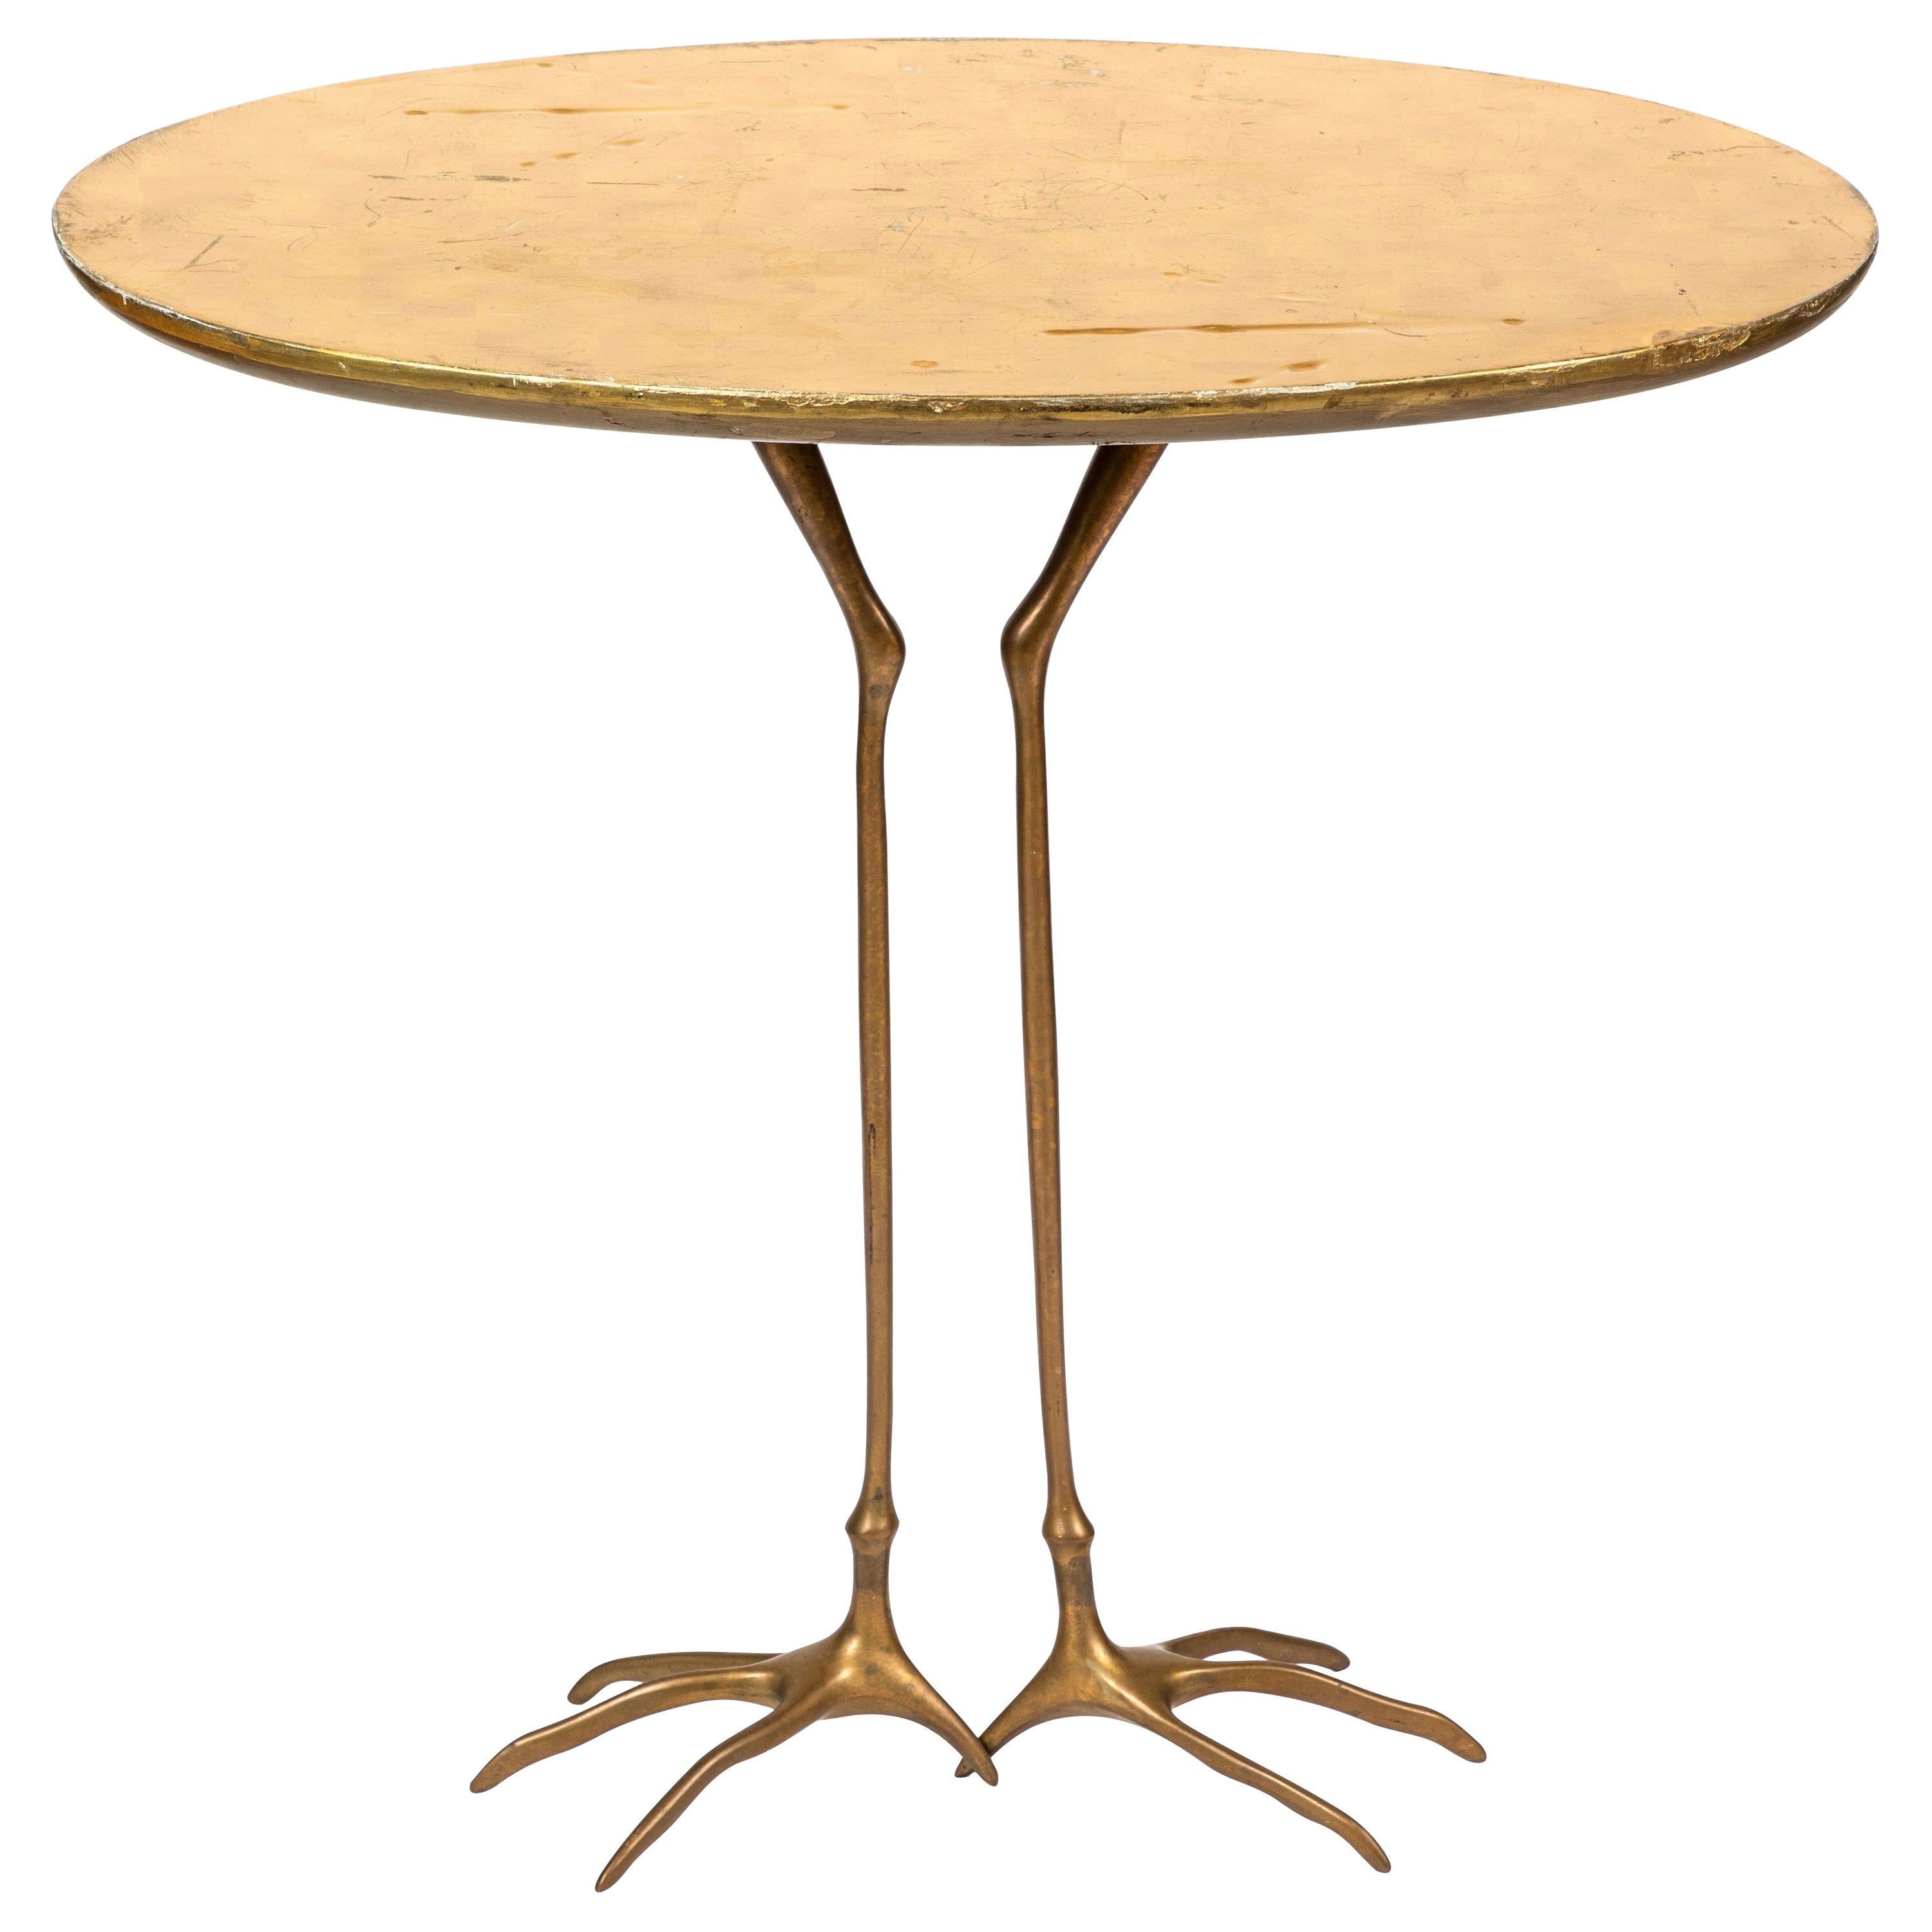 'Traccia' Table by Meret Oppenheim